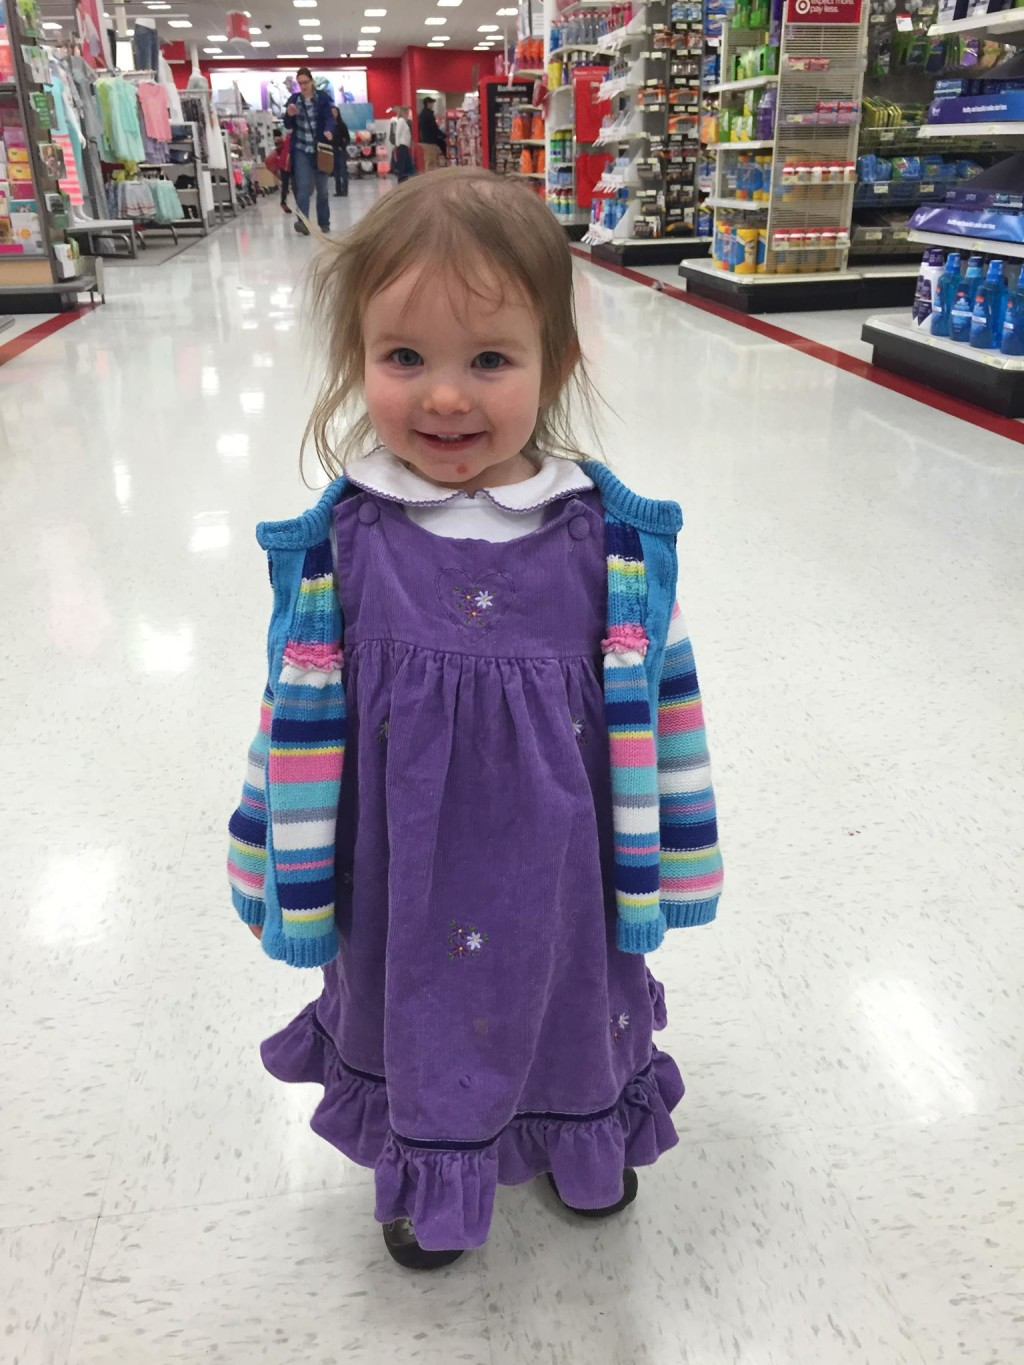 My Ragamuffin girl - Because sometimes, just GETTING to the store is more important than how you're dressed when you get there.